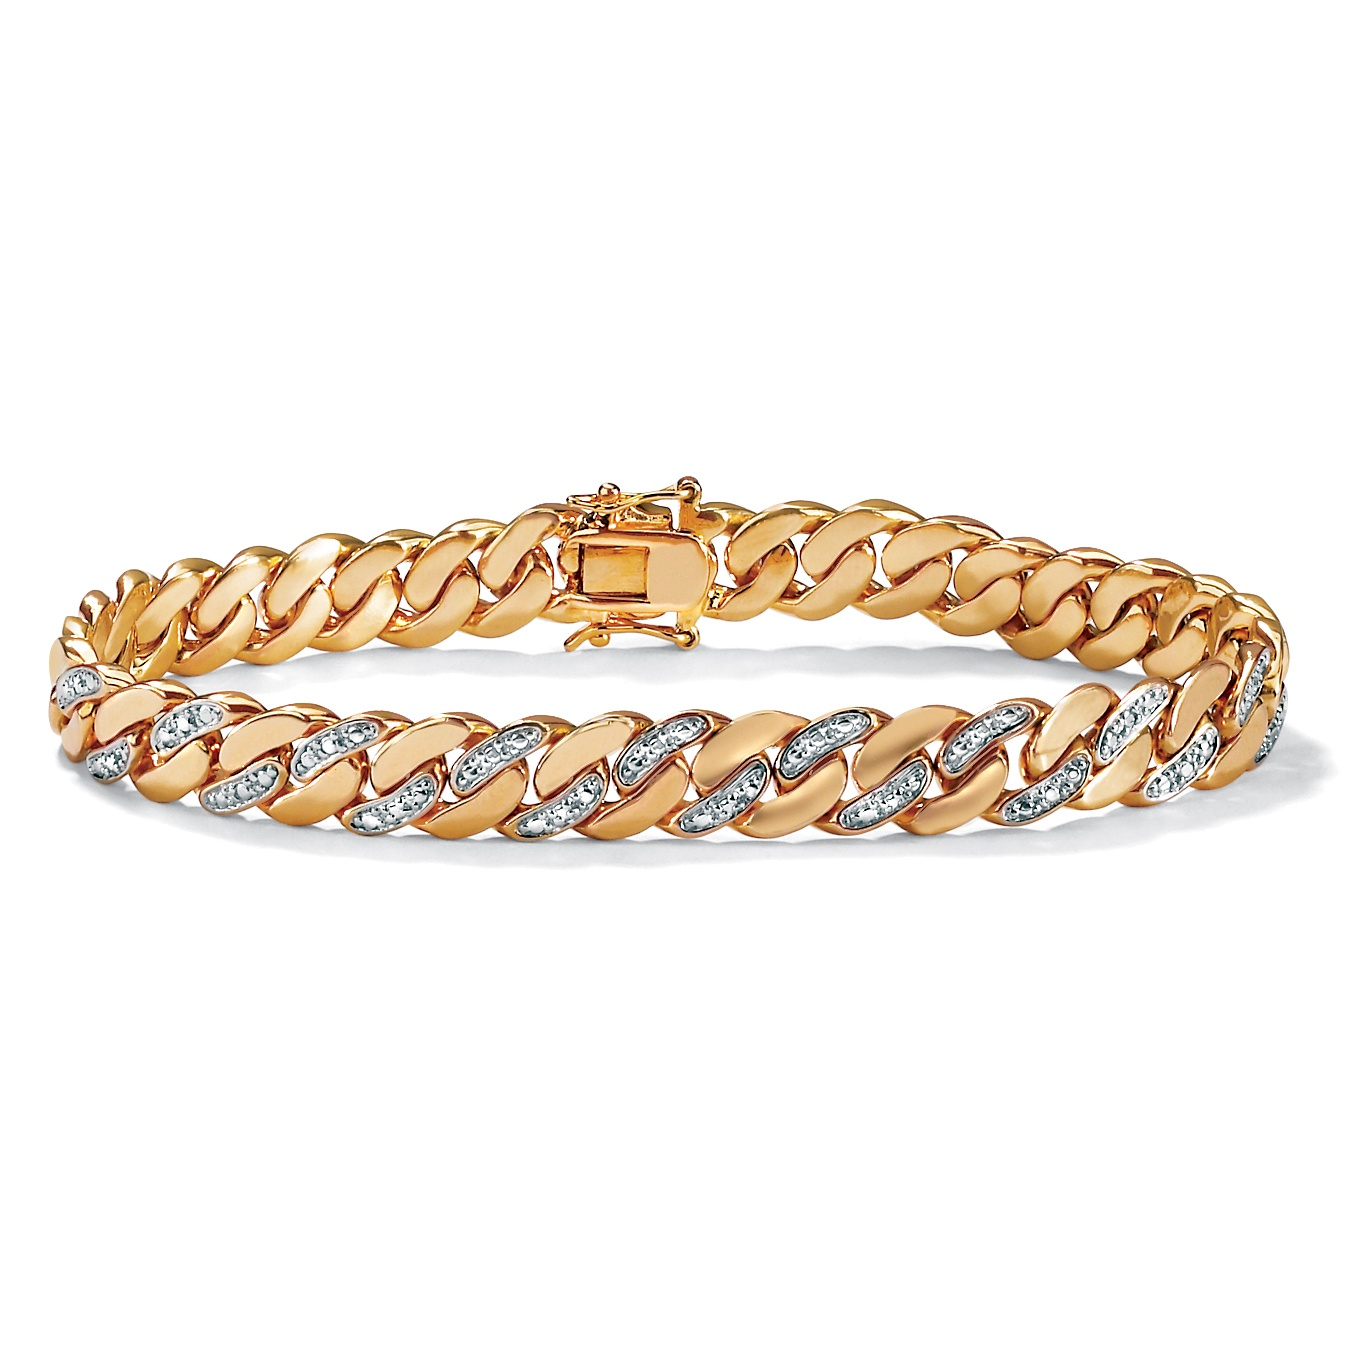 Men's Diamond Accent 9 mm Curb-Link Bracelet 18k Yellow Gold-Plated 8.5""